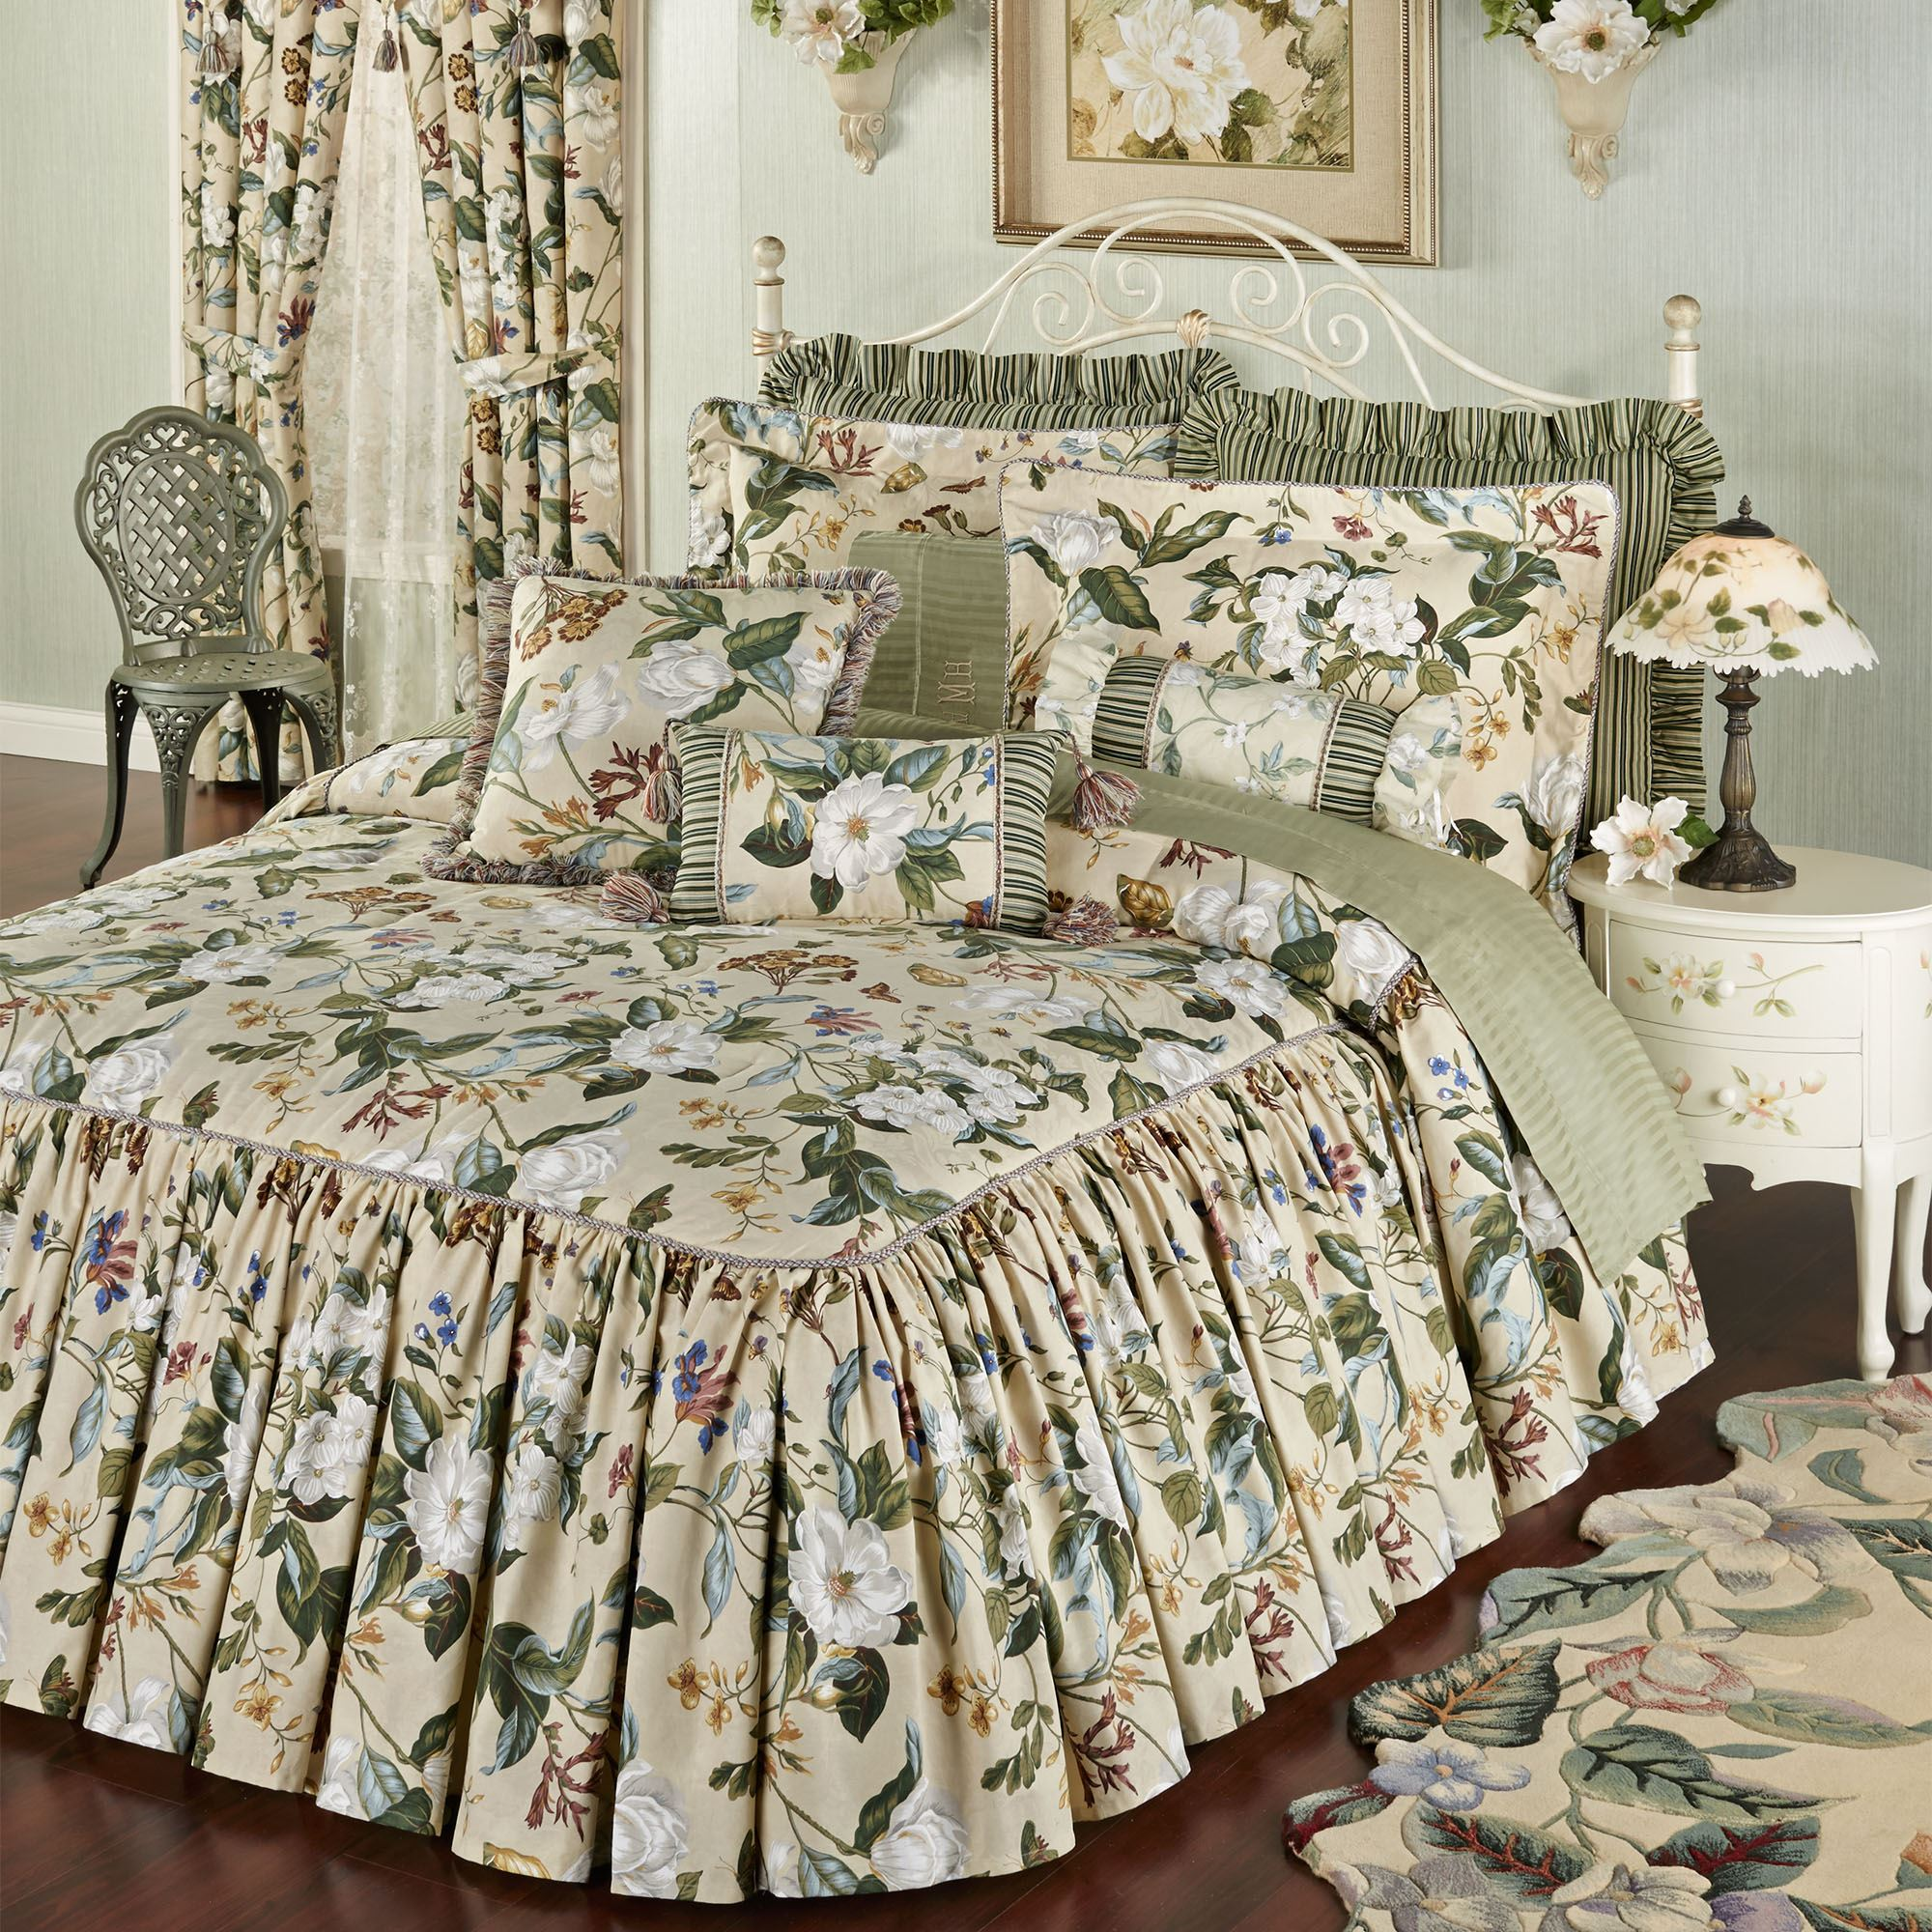 King Sized Bedding Romantic